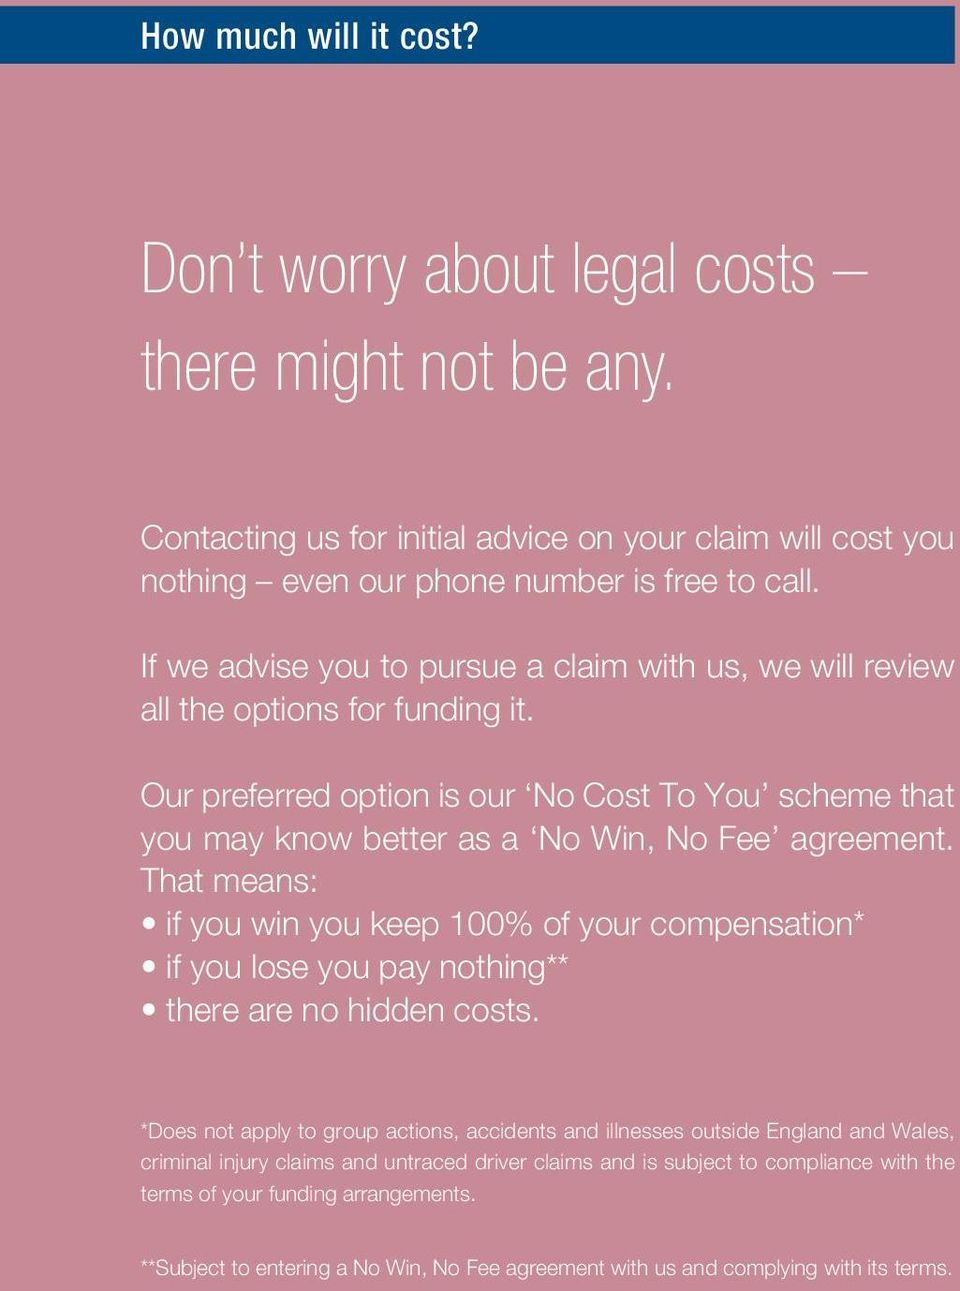 That means: if you win you keep 100% of your compensation* if you lose you pay nothing** there are no hidden costs.